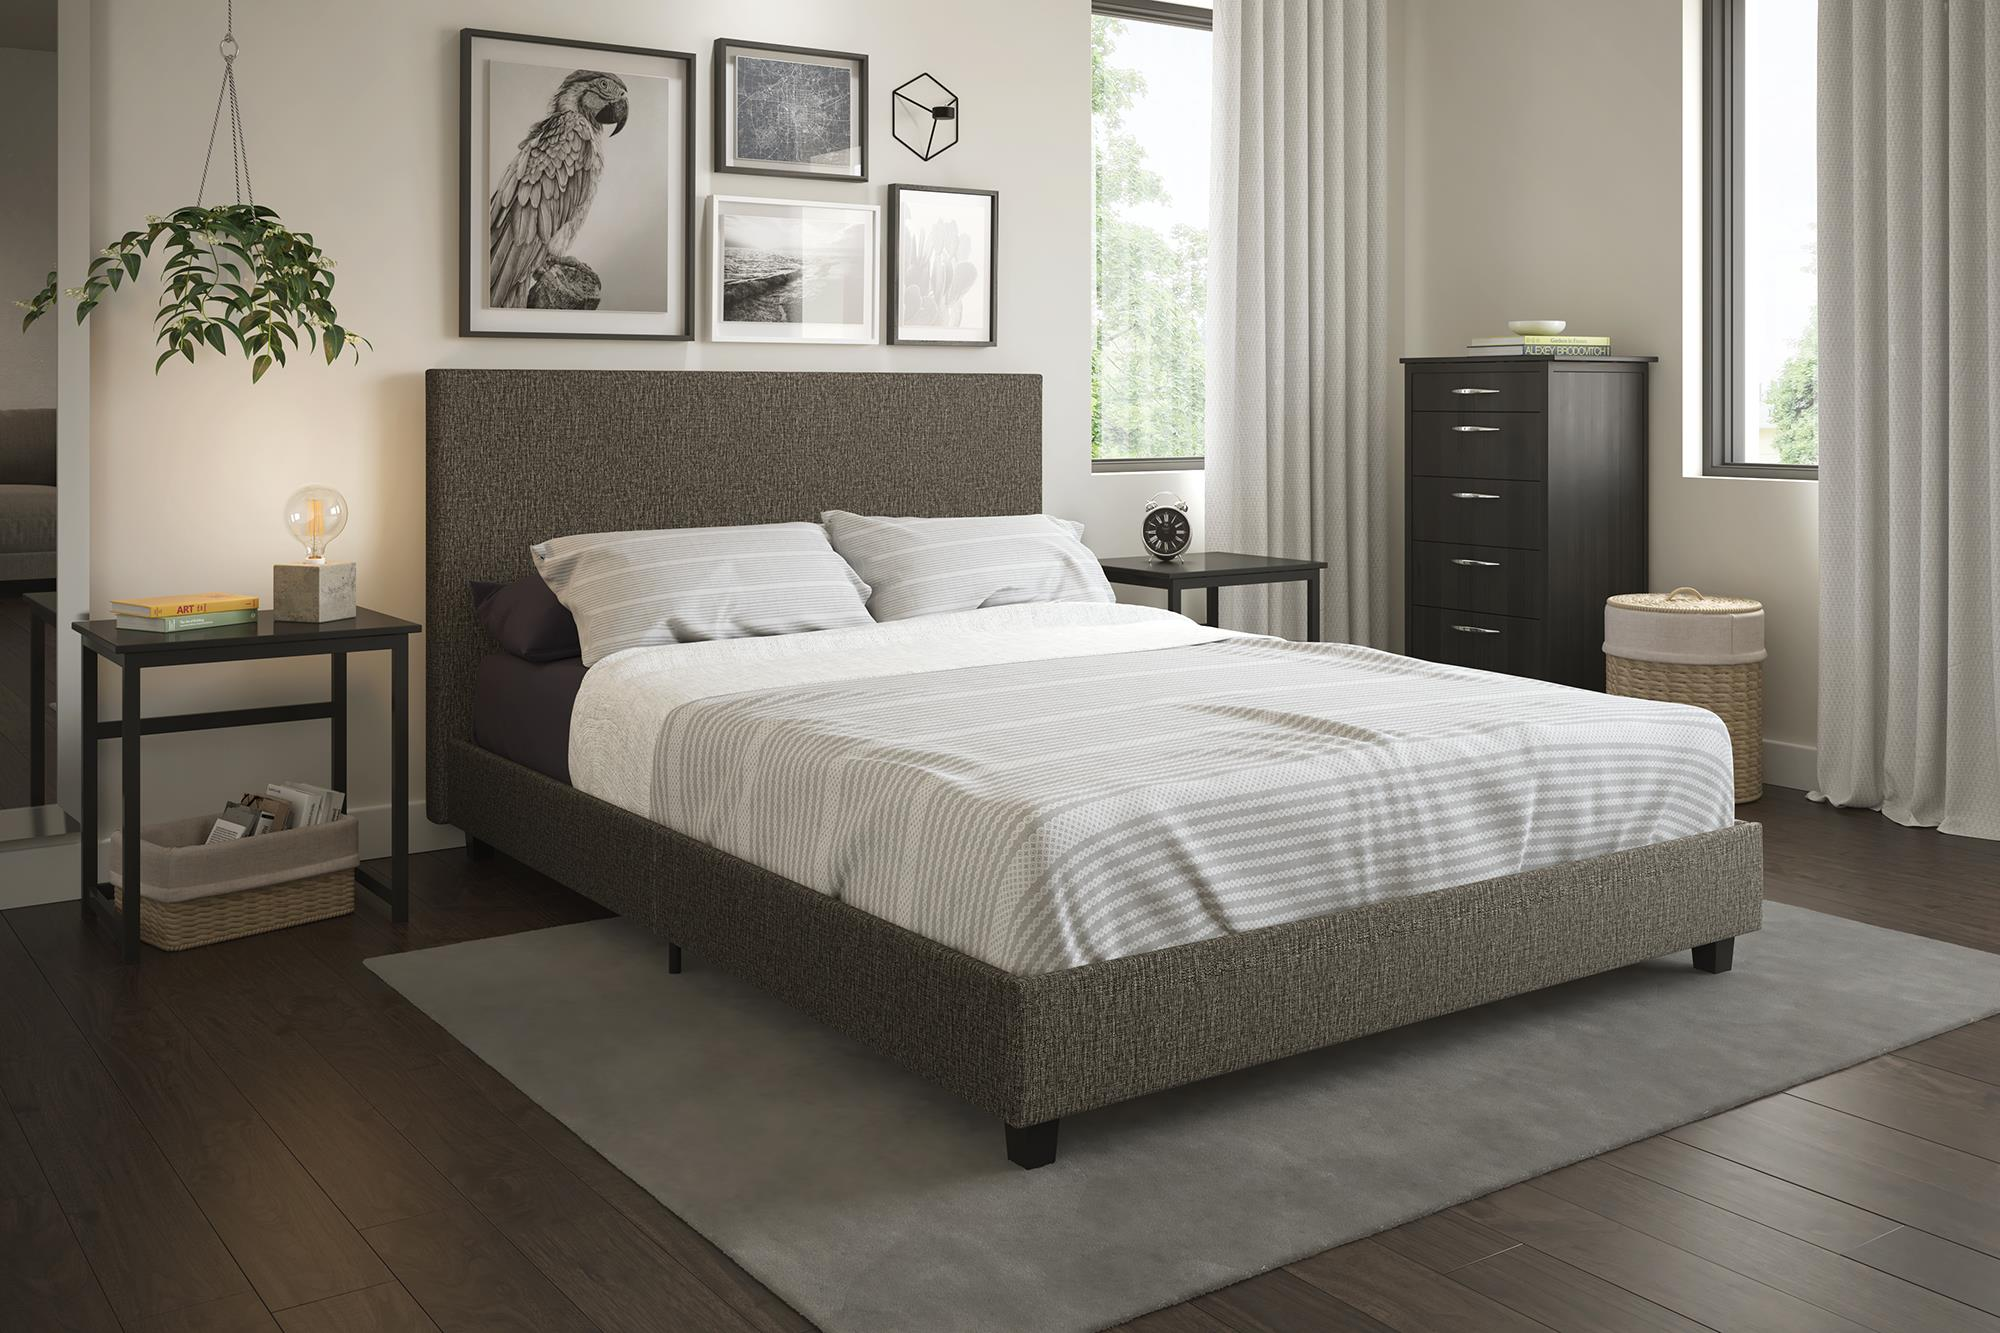 Mainstays Upholstered Platform Bed, Grey Linen, Multiple Sizes